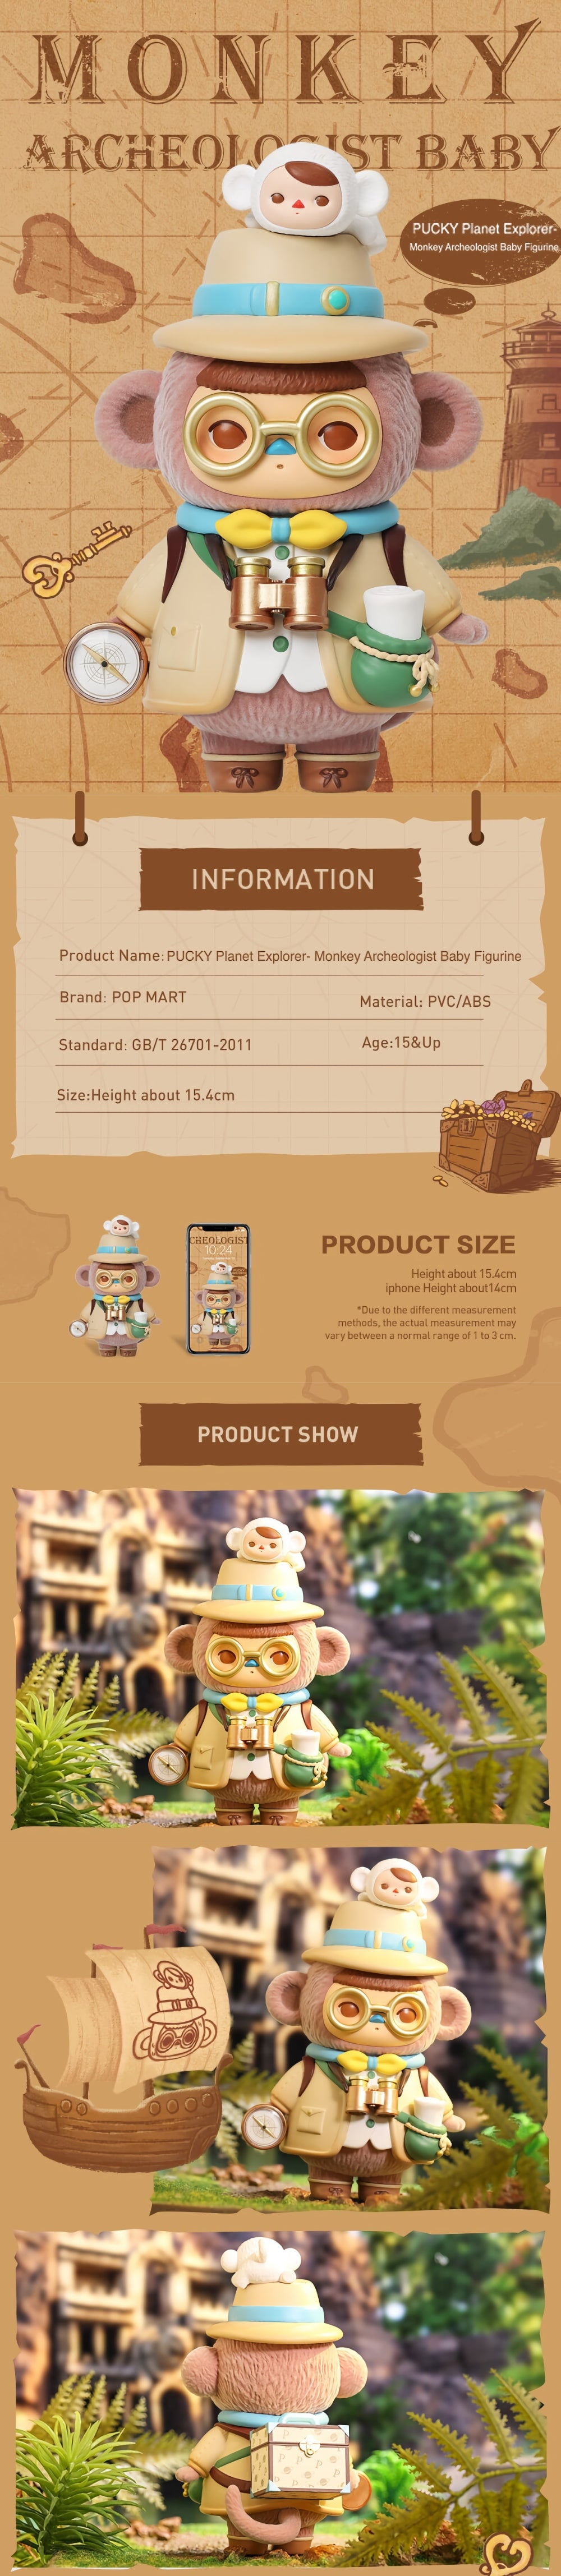 Pop Mart Pucky Monkey Archeologist Baby Product Details